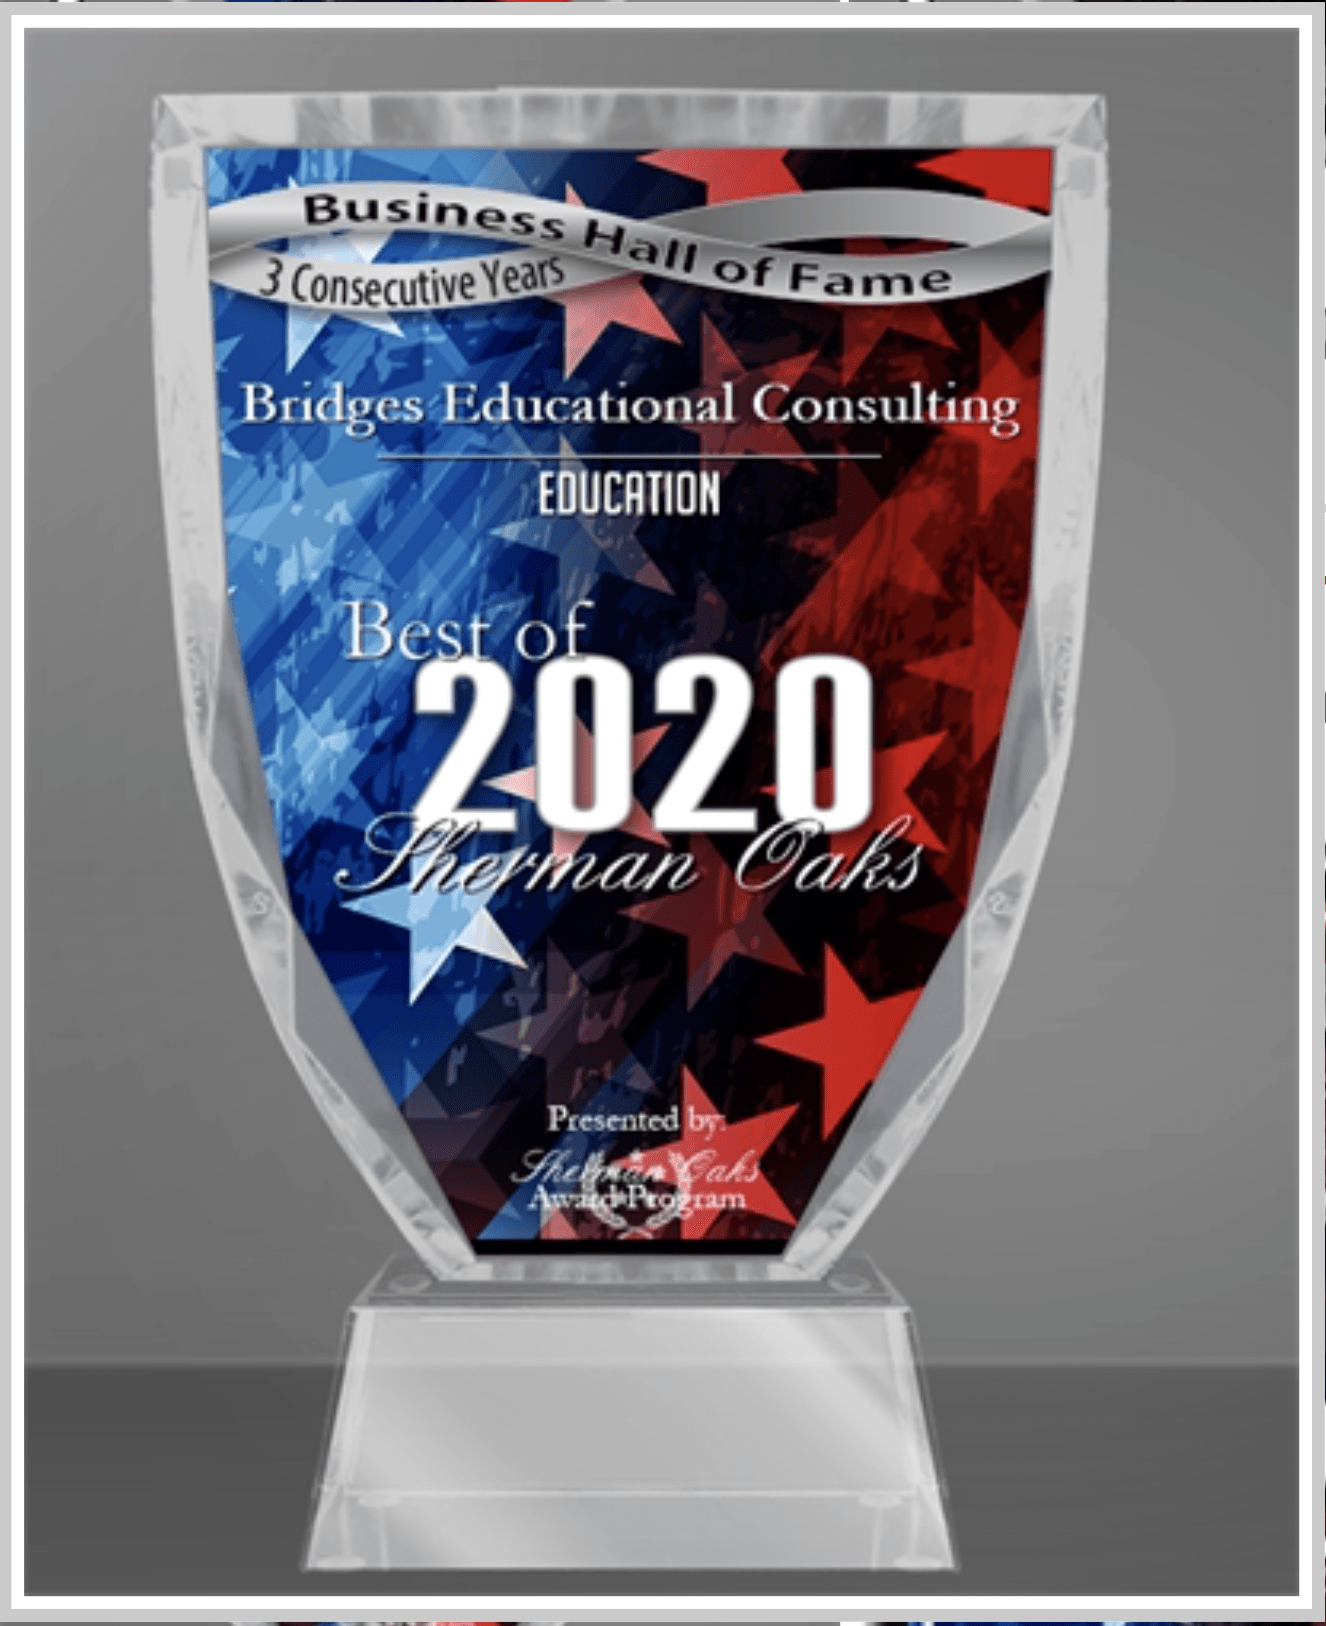 Bridges Educational Consulting Receives 2020 Best of Sherman Oaks Award